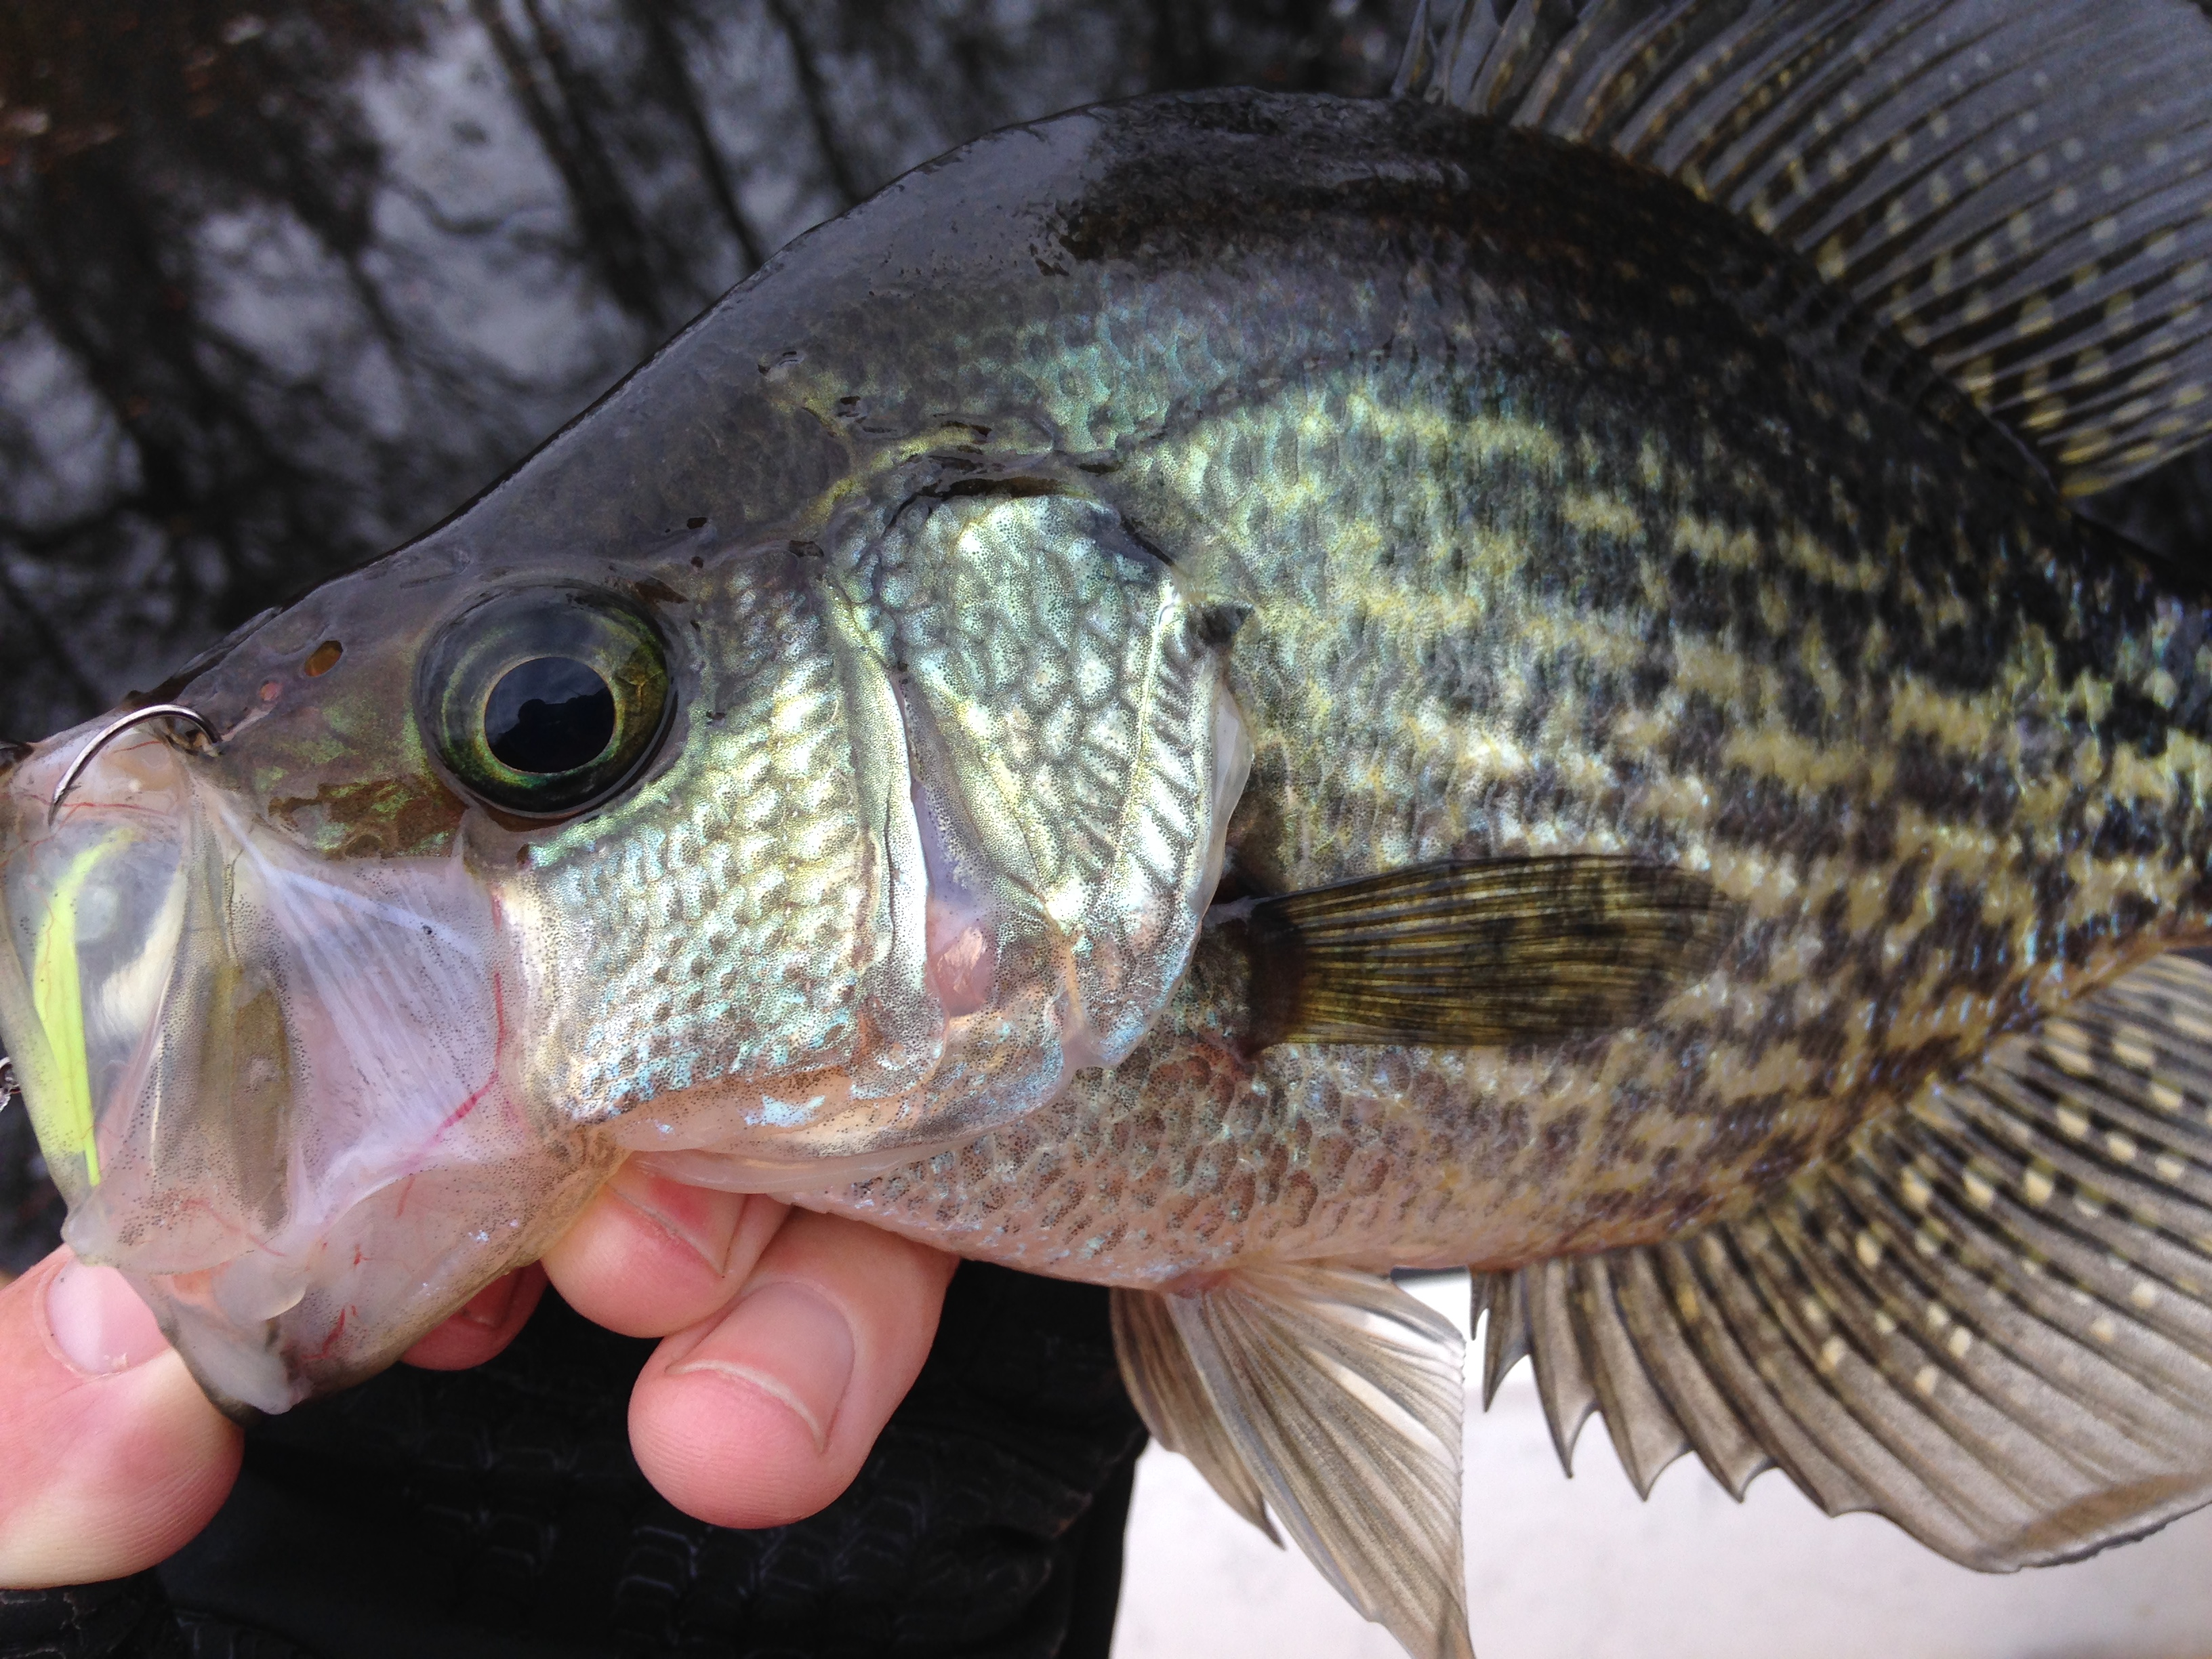 Tar river crappie fishibx eastern nc fishing guide for Northeast saltwater fishing reports